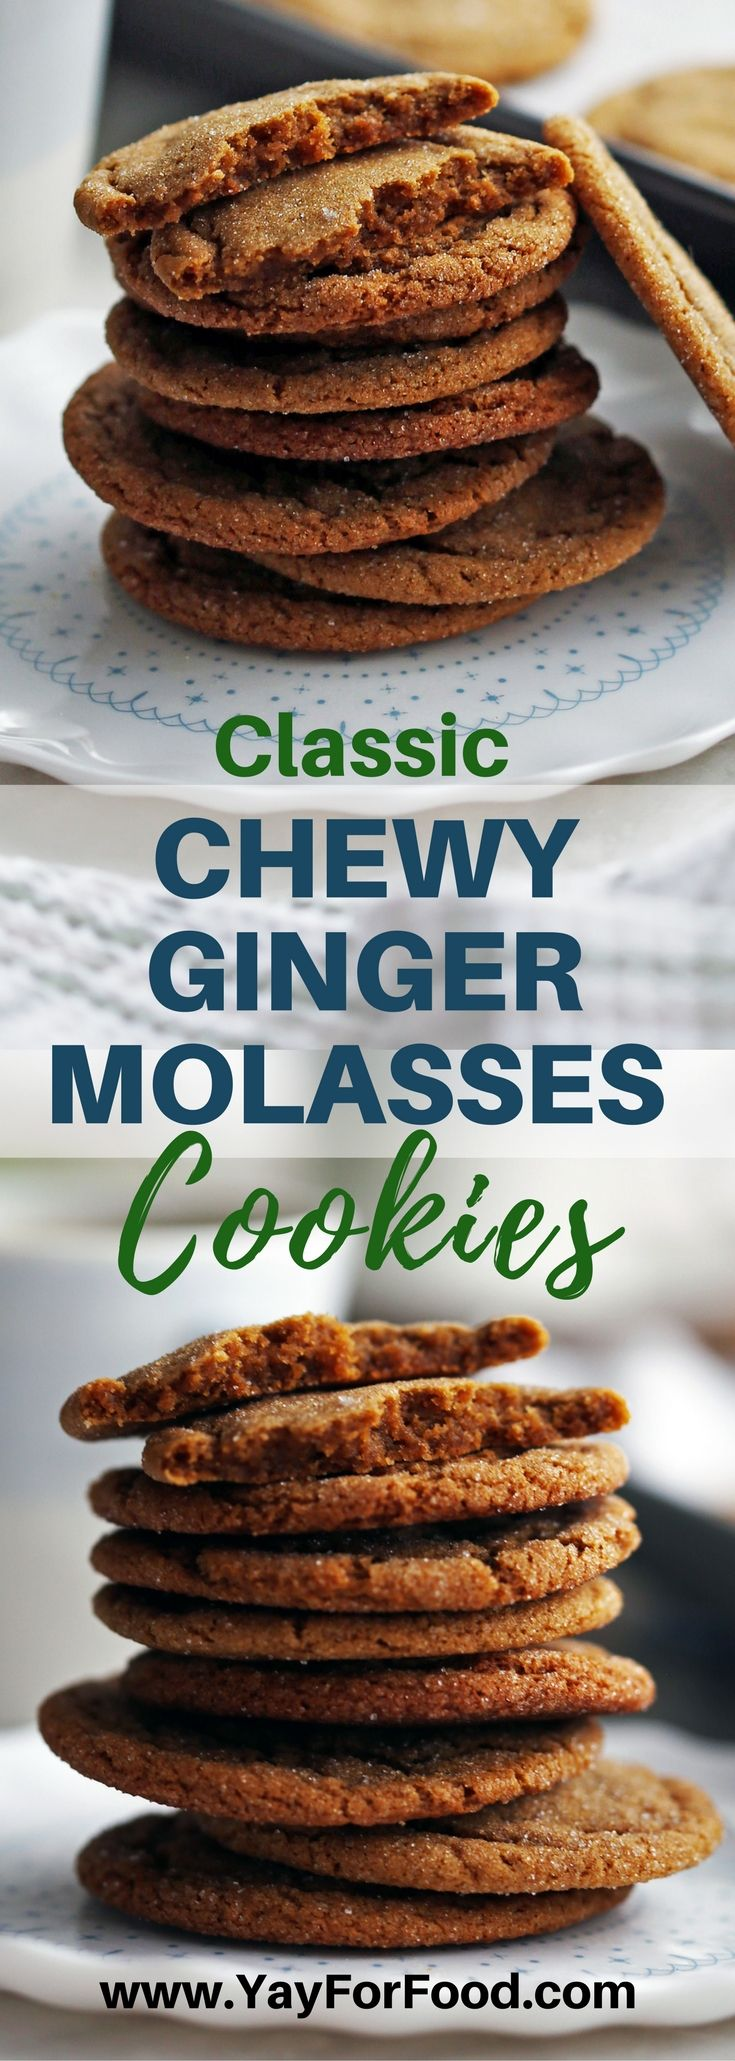 Check out these delicious sweet and spiced gingersnap (ginger molasses) cookies! Makes 32 tasty classic cookies in under 30